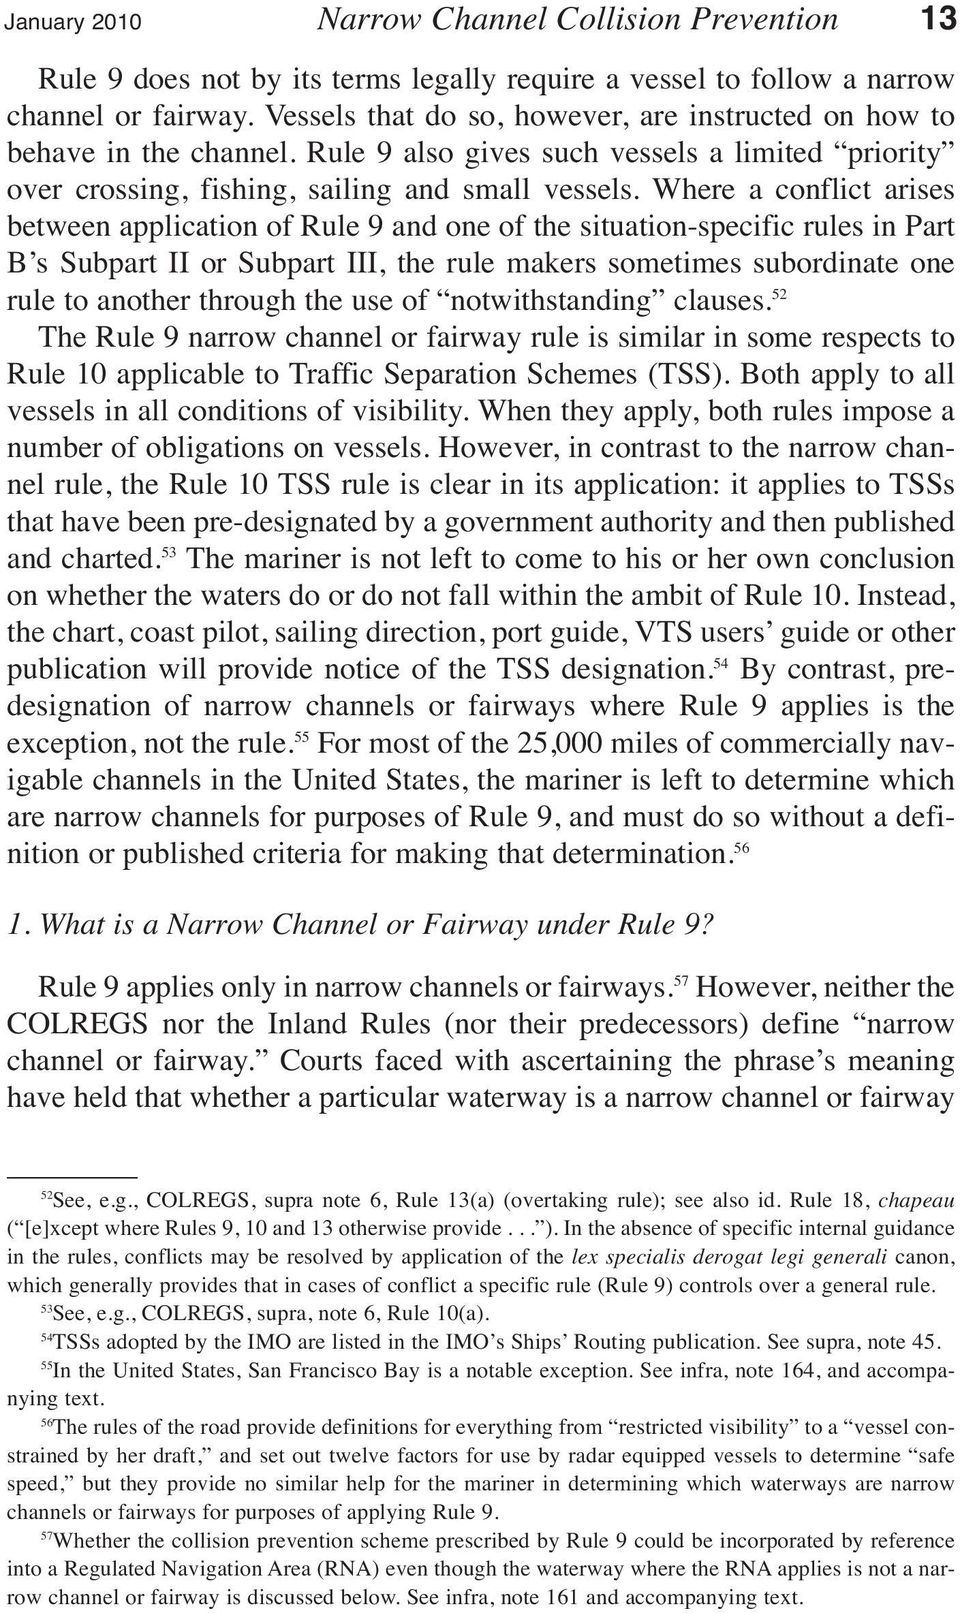 Where a conflict arises between application of Rule 9 and one of the situation-specific rules in Part B s Subpart II or Subpart III, the rule makers sometimes subordinate one rule to another through